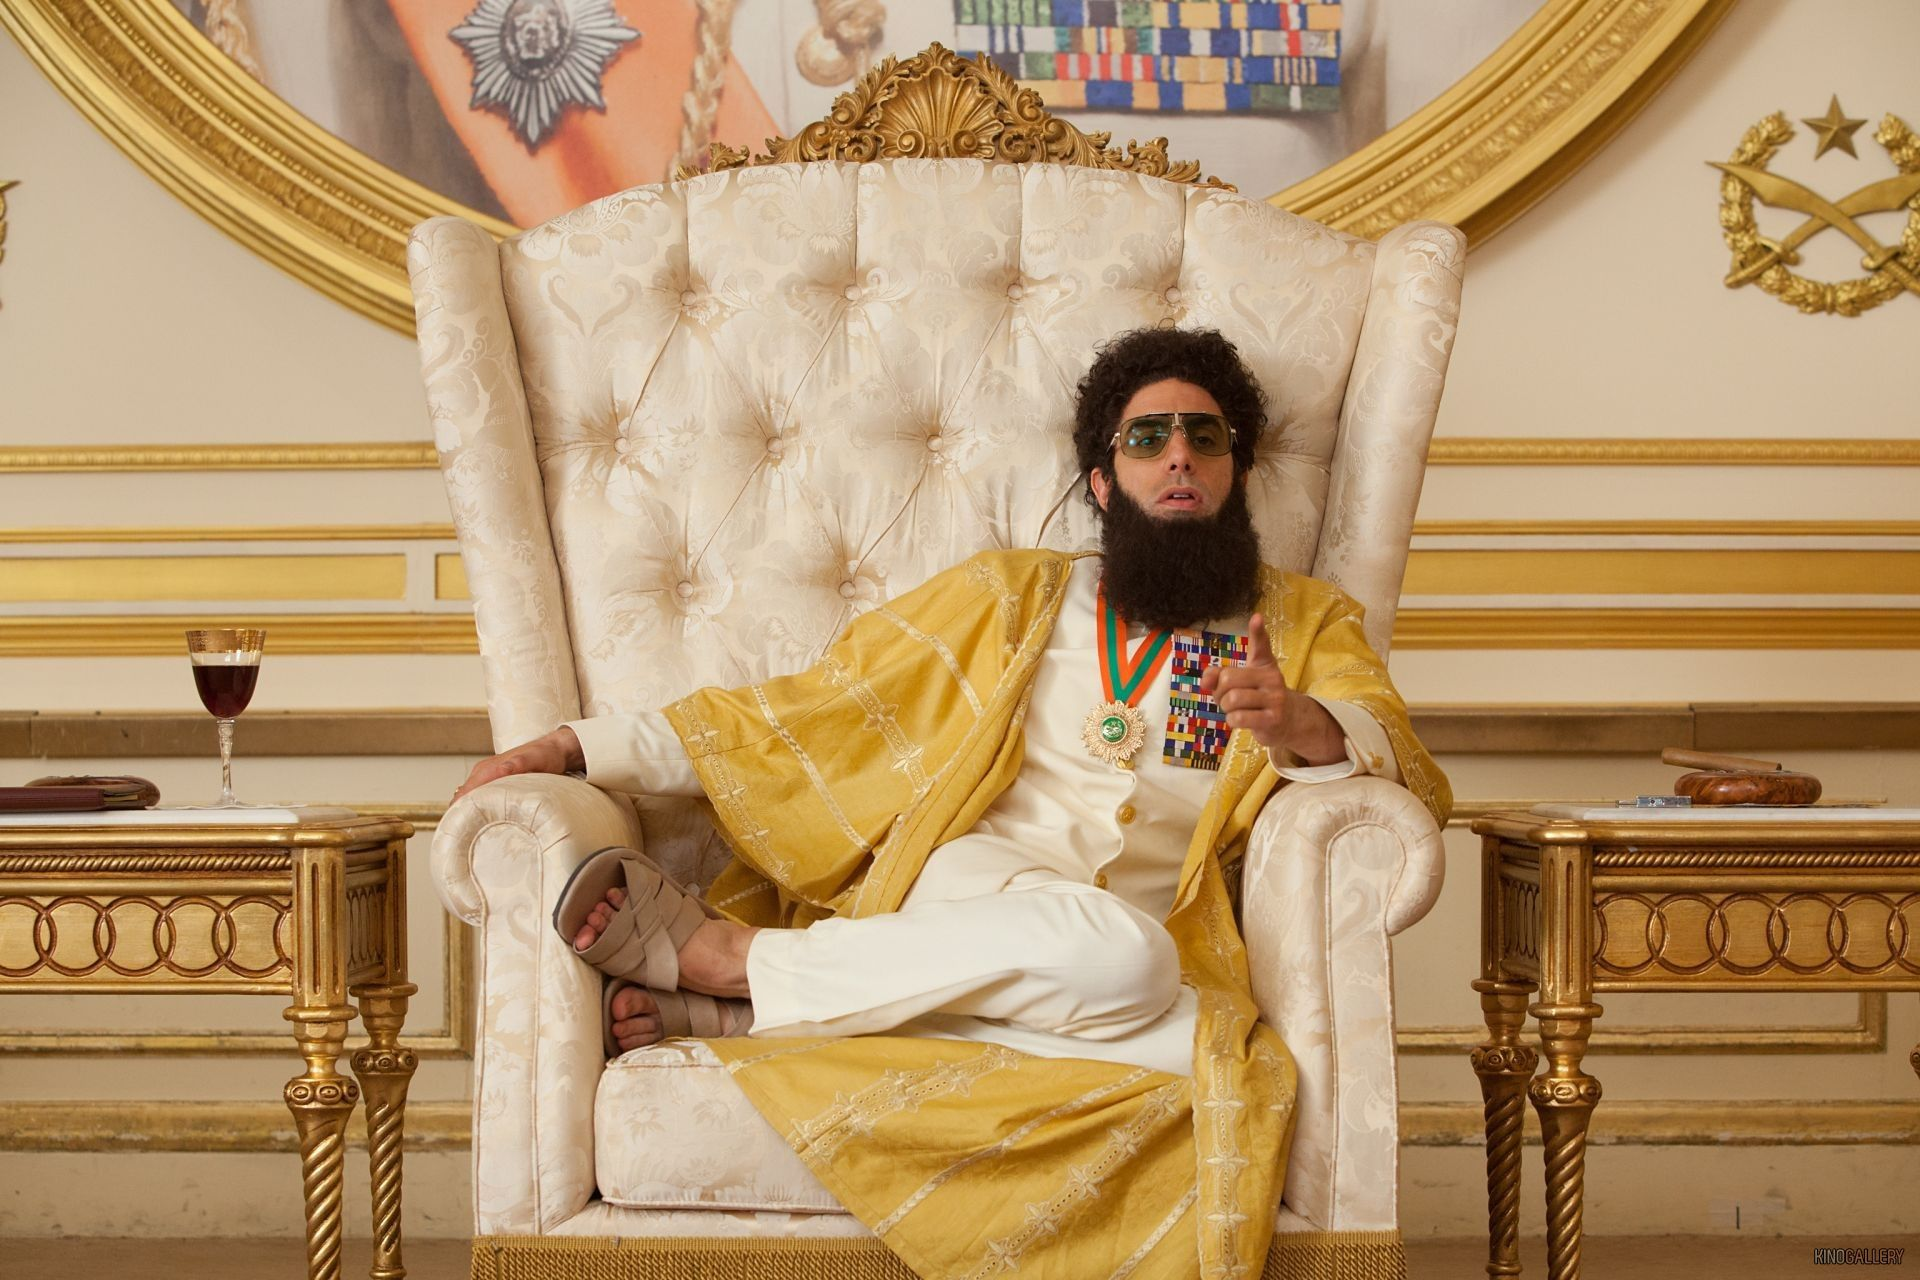 Sacha Baron Cohen as Admiral General Haffaz Aladeen in The Dictator, 2012.